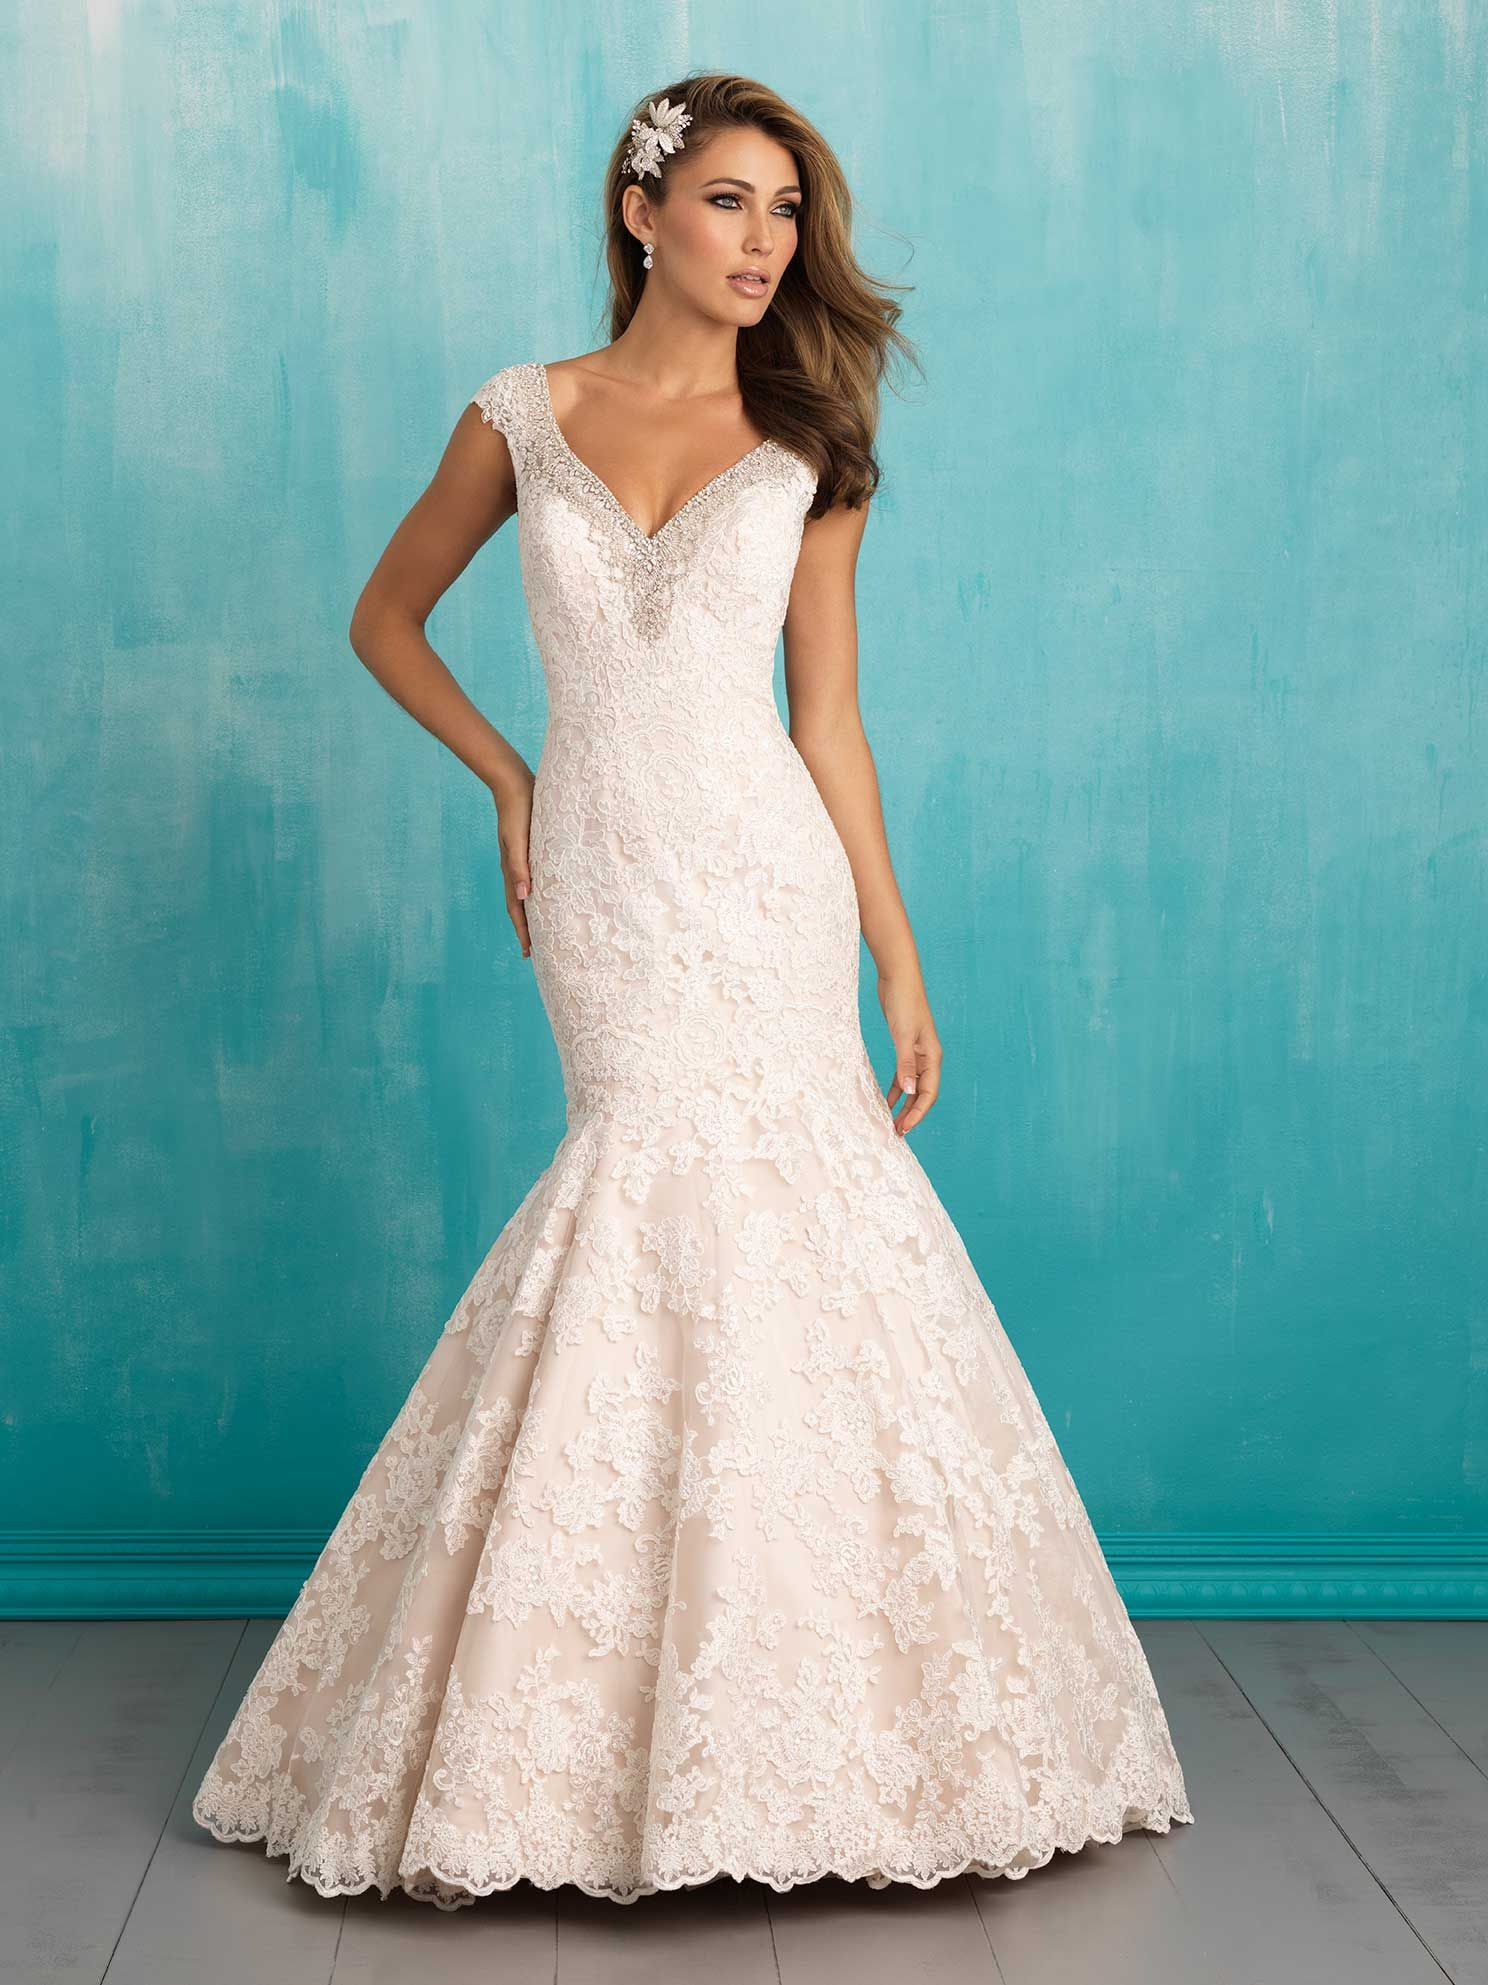 Allure Style 9311 Favorite Details Of This Gown Include The Delicately Beaded Cap Sleeves And Tiered